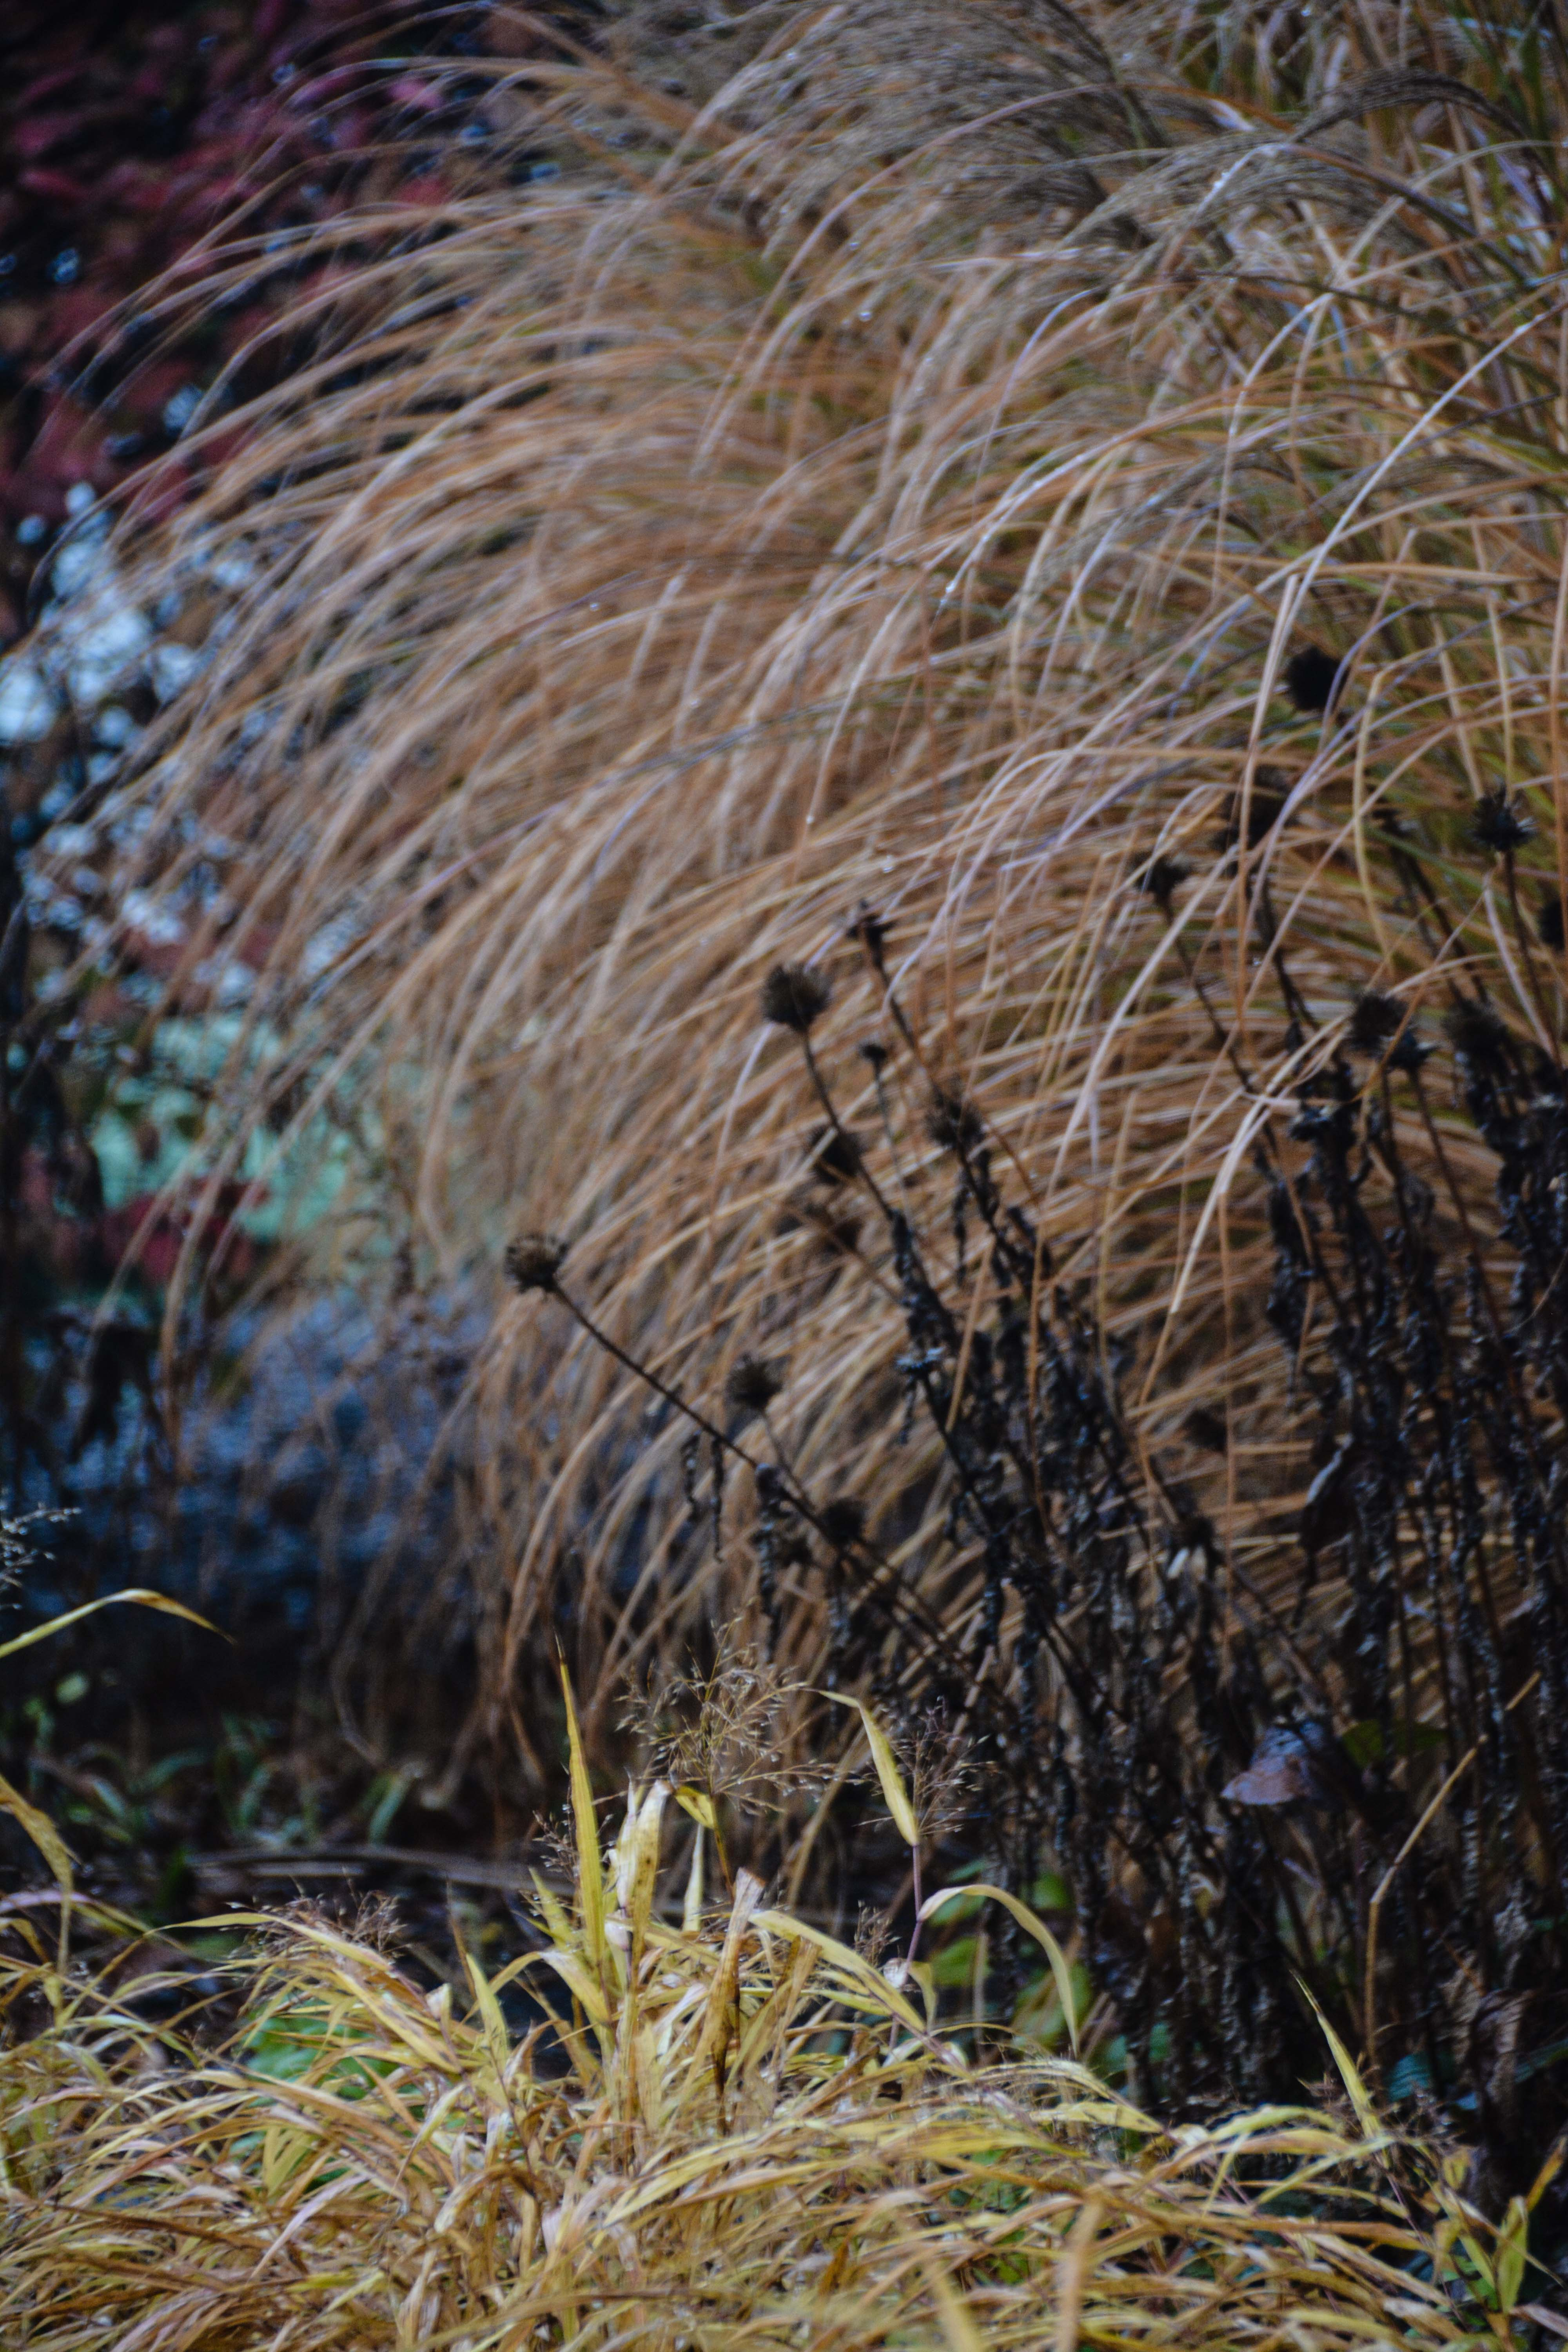 Miscanthus sinensis 'Gracillimus'- eulalia grass, Echinacea purpurea- coneflower, Hakonechla 'All Gold'- Japanese forest grass, Beauty in Decay, Thinking Outside the Boxwood